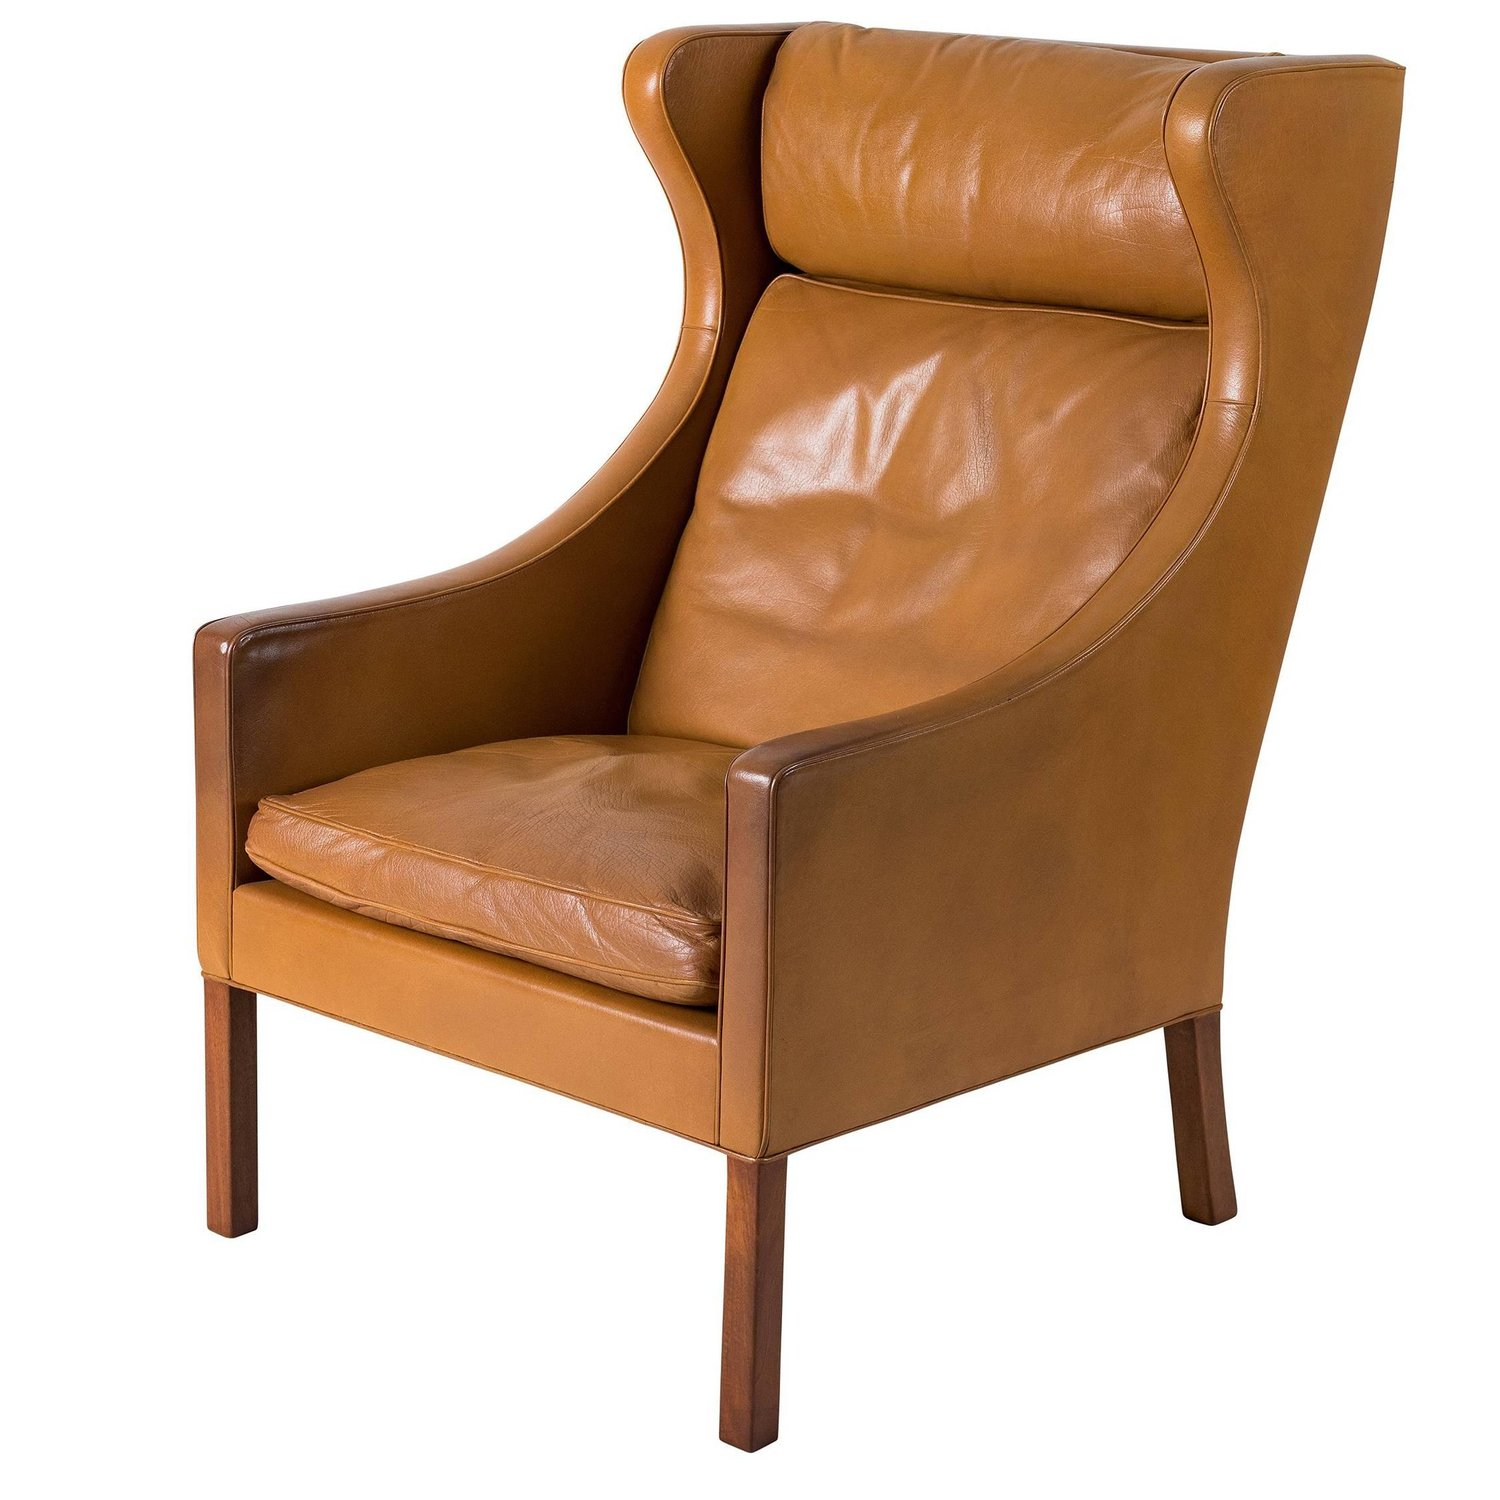 leather wingback chairs beach target store borge mogensen chair denmark 50